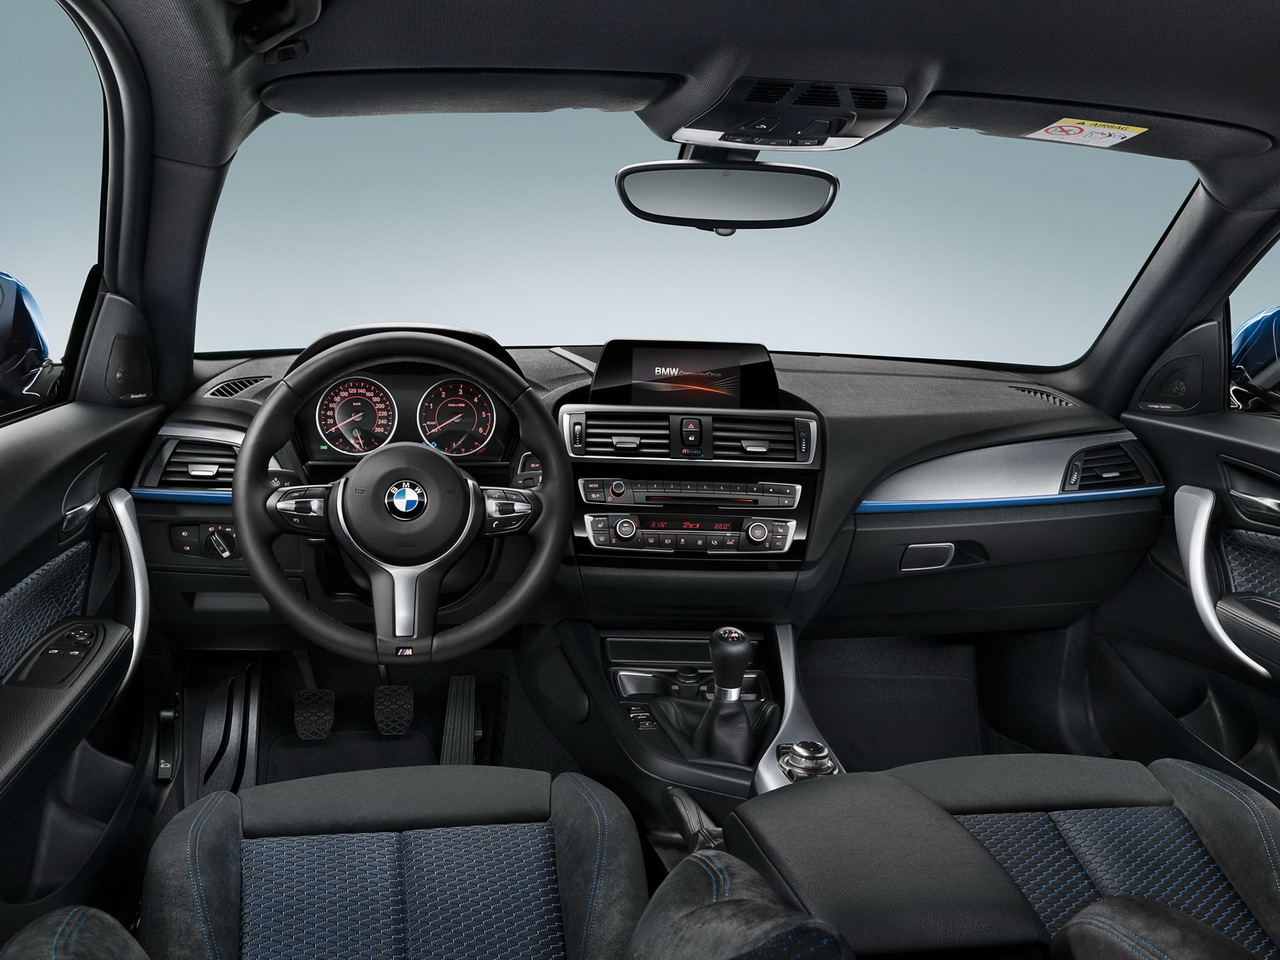 nouvelle bmw s rie 1 2015 plus de photos et une vid o photo 15 l 39 argus. Black Bedroom Furniture Sets. Home Design Ideas